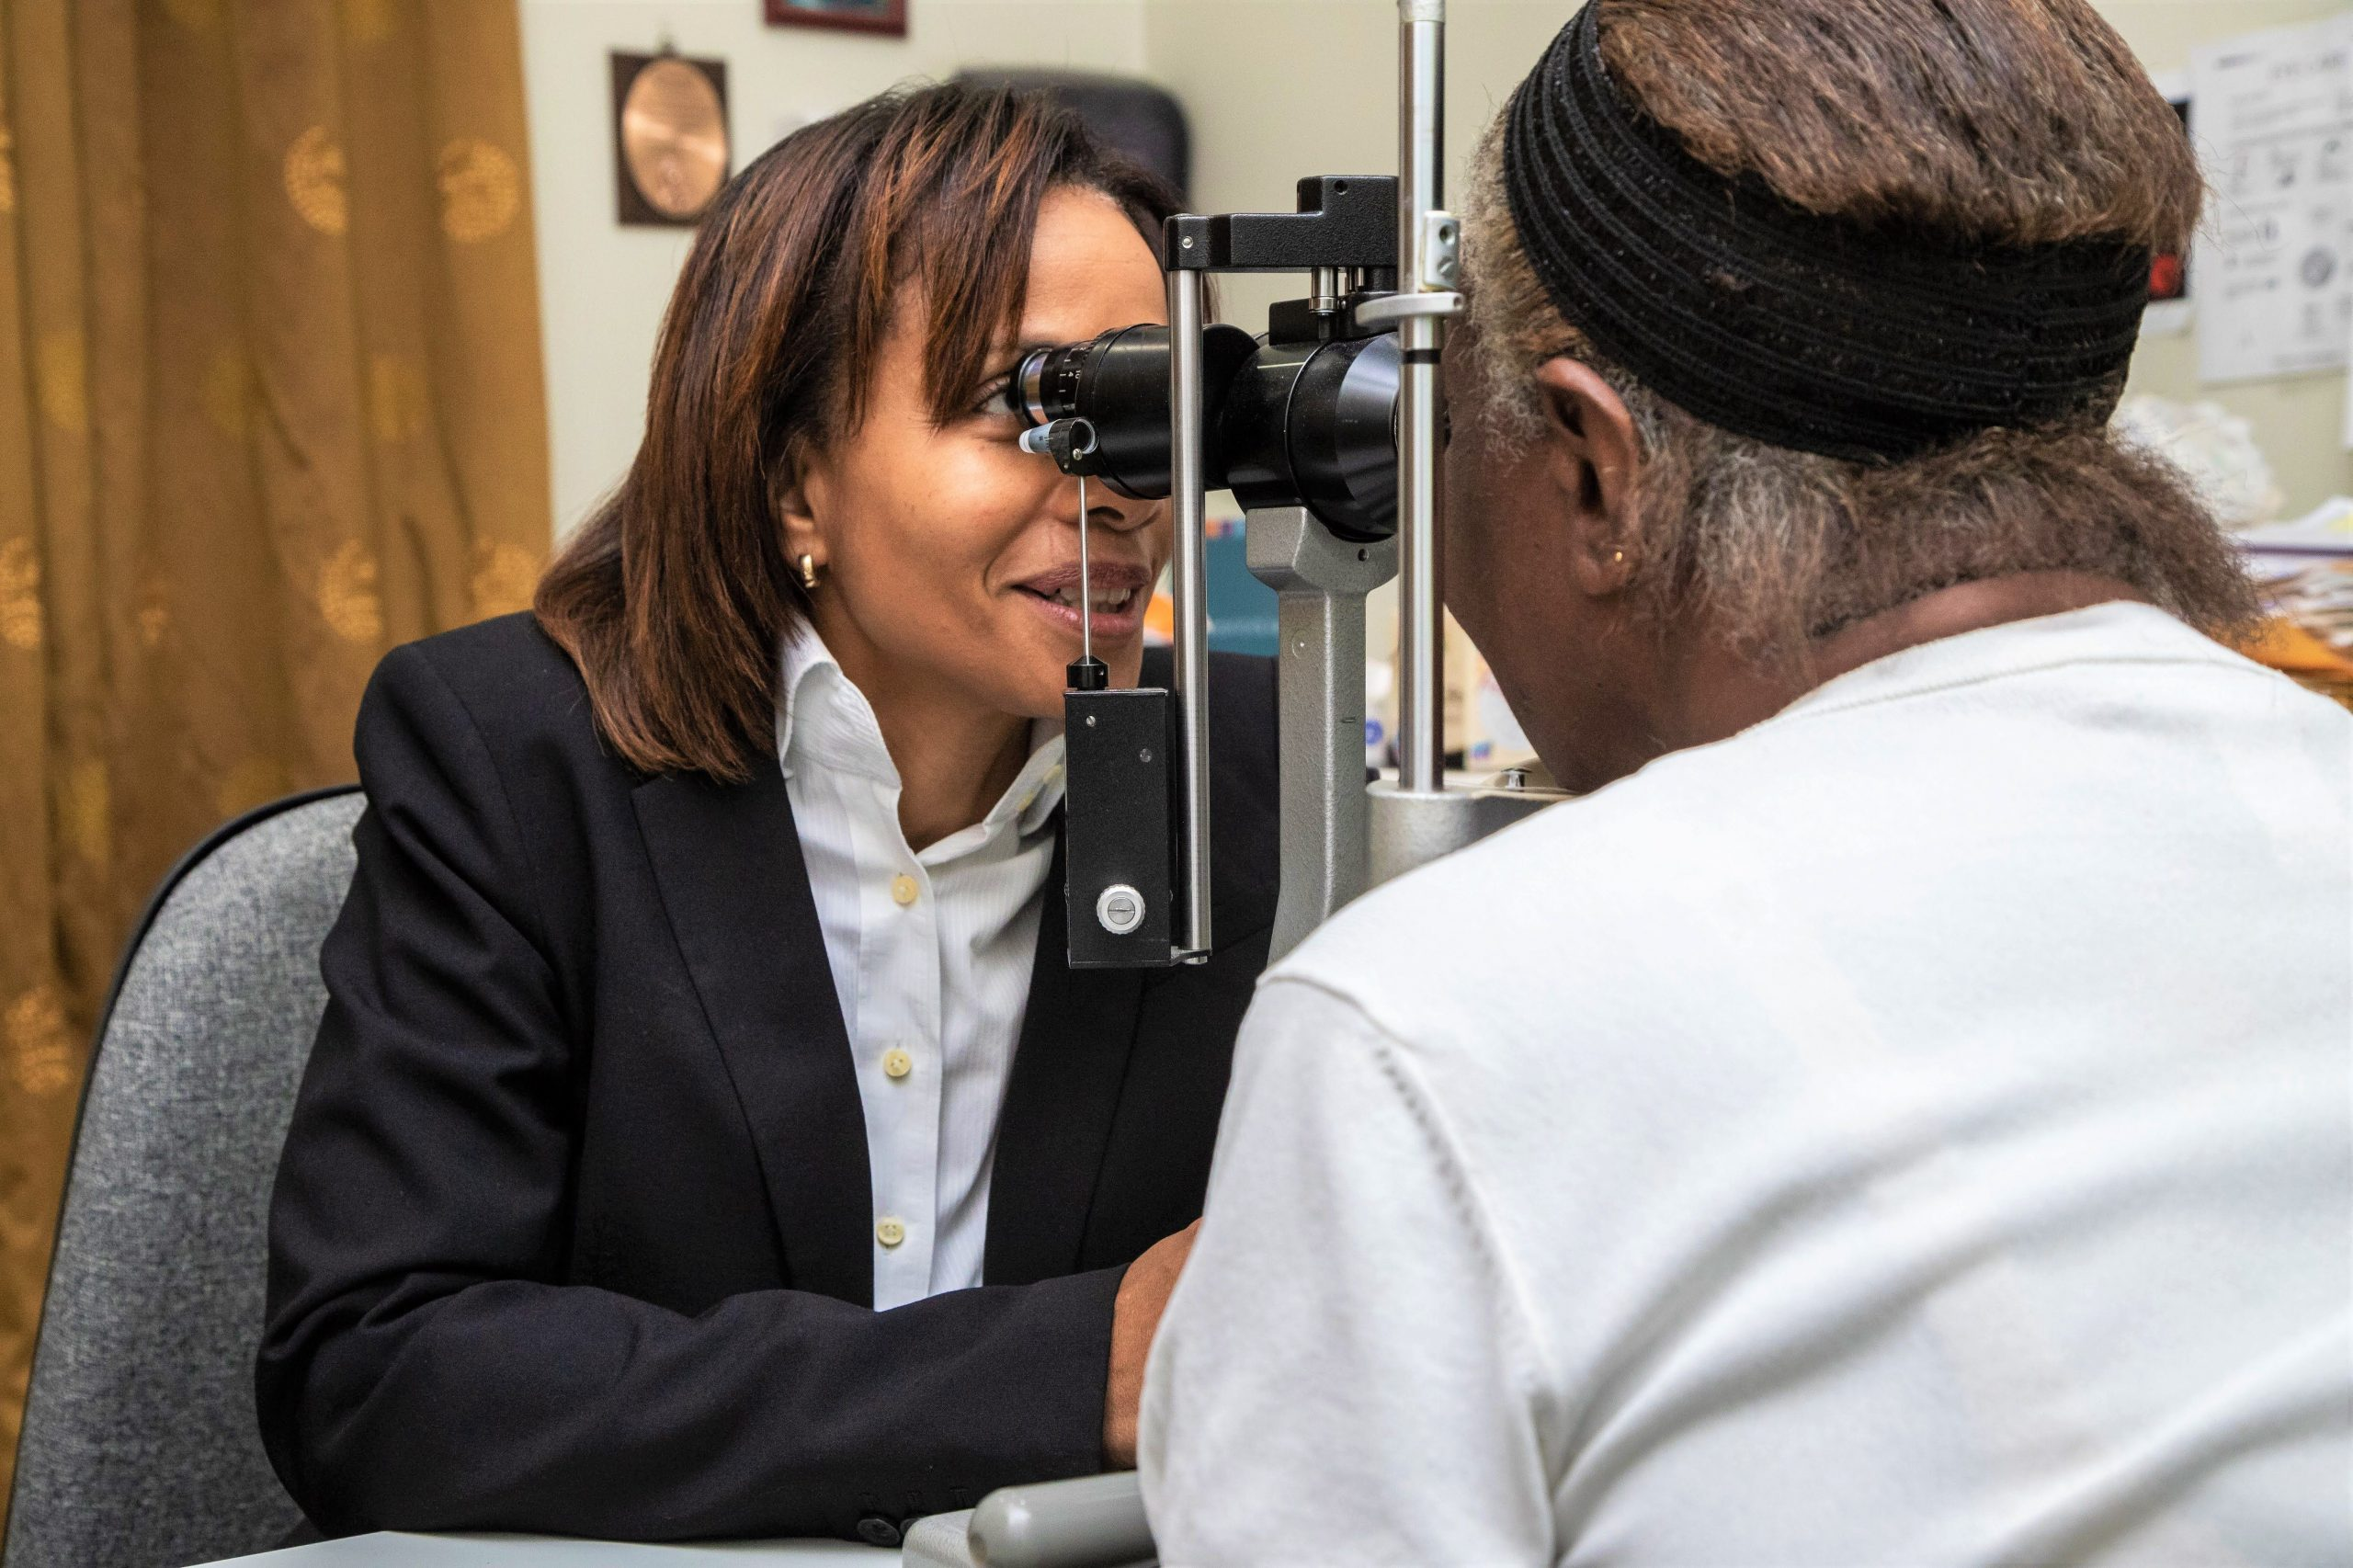 An opthalmologist inspects a patient's eye with a slit lamp